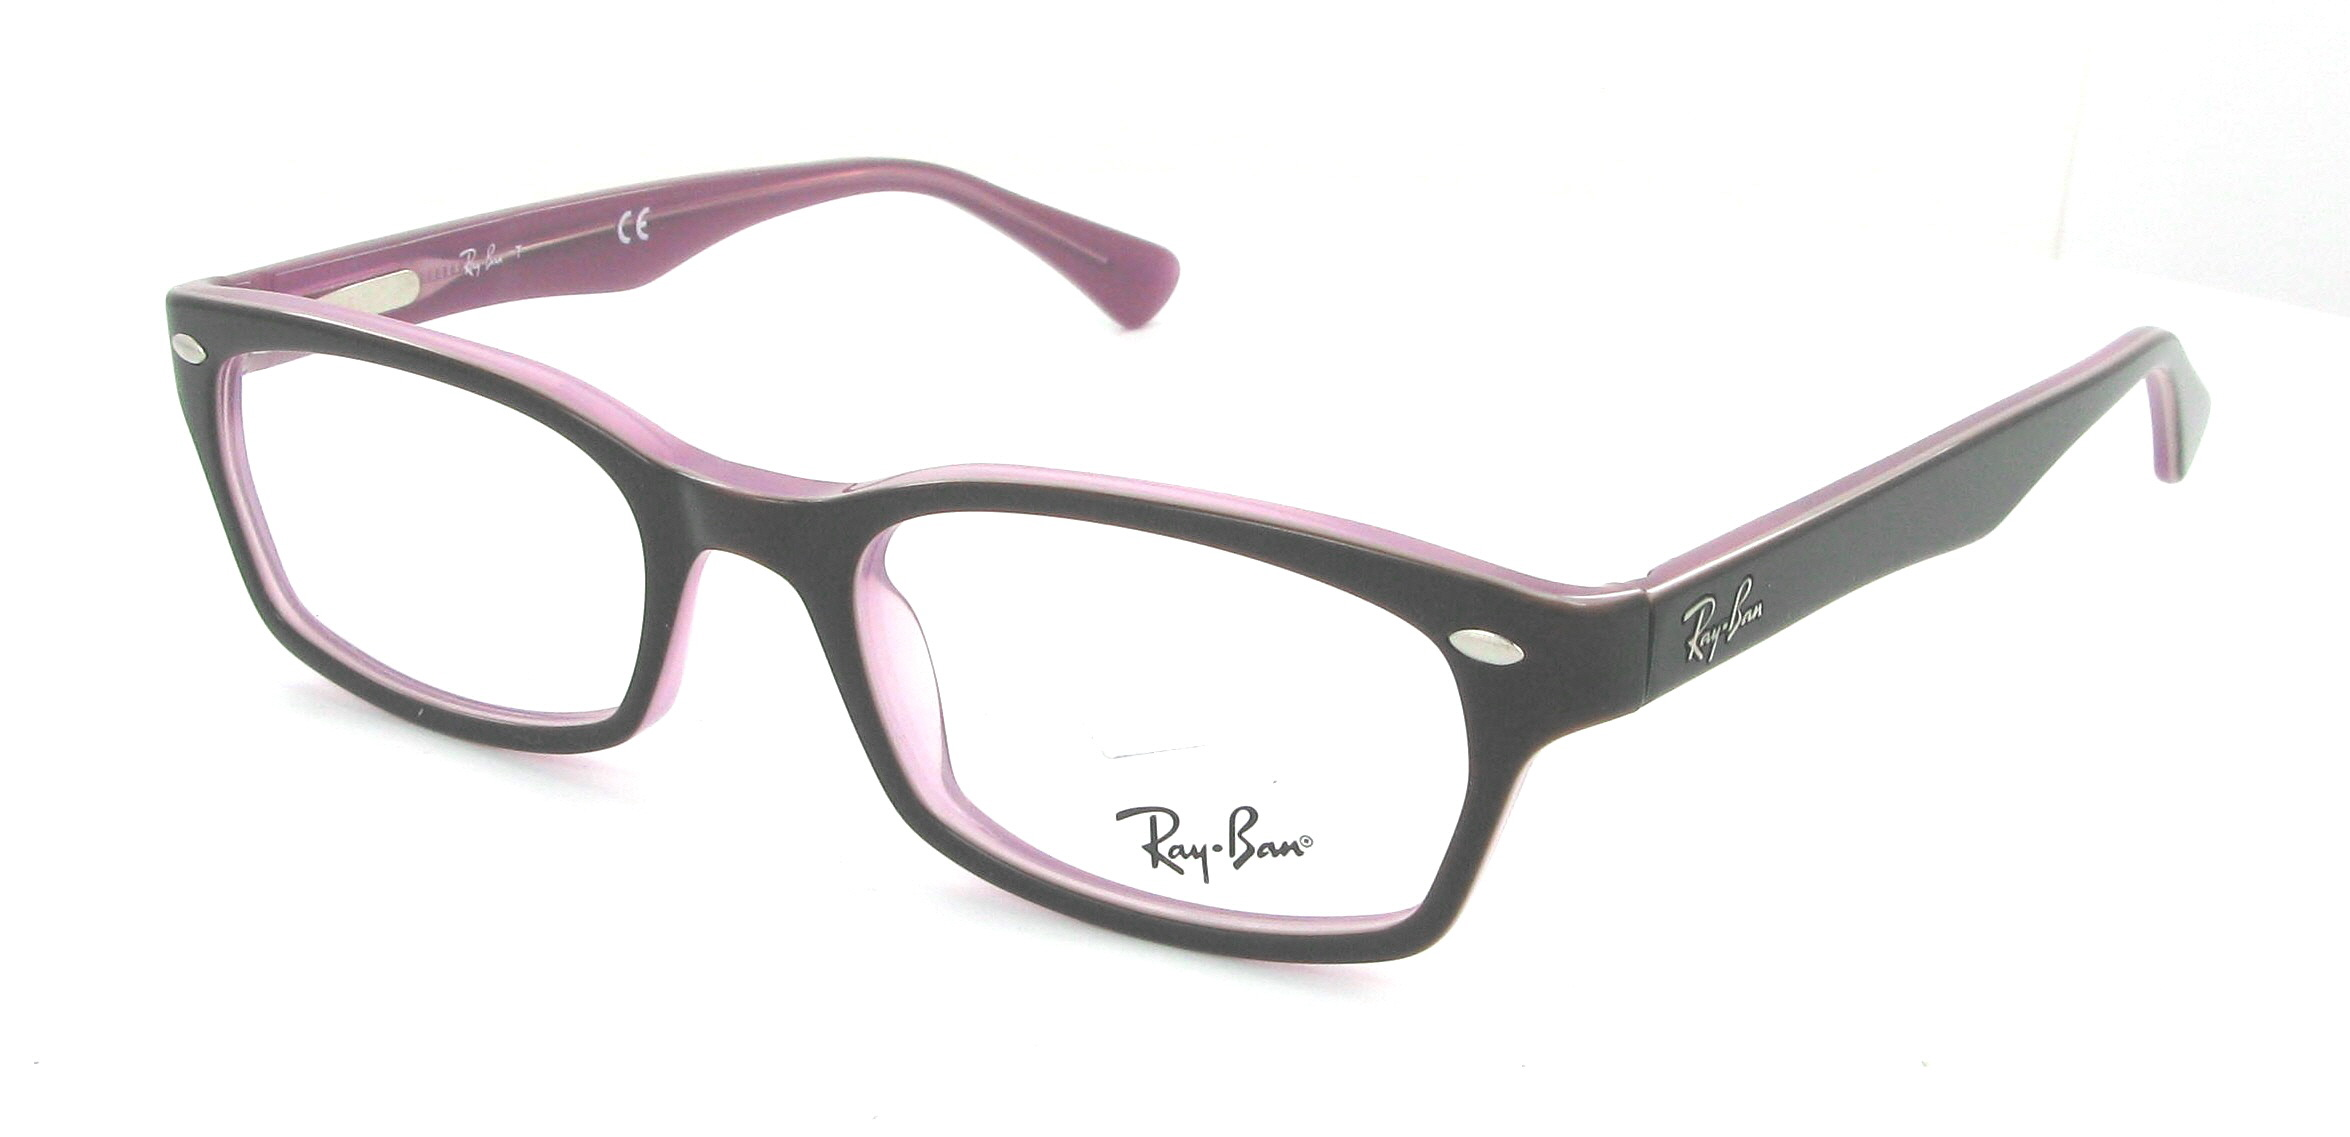 Ray Ban Rx Eyeglasses Women | Louisiana Bucket Brigade